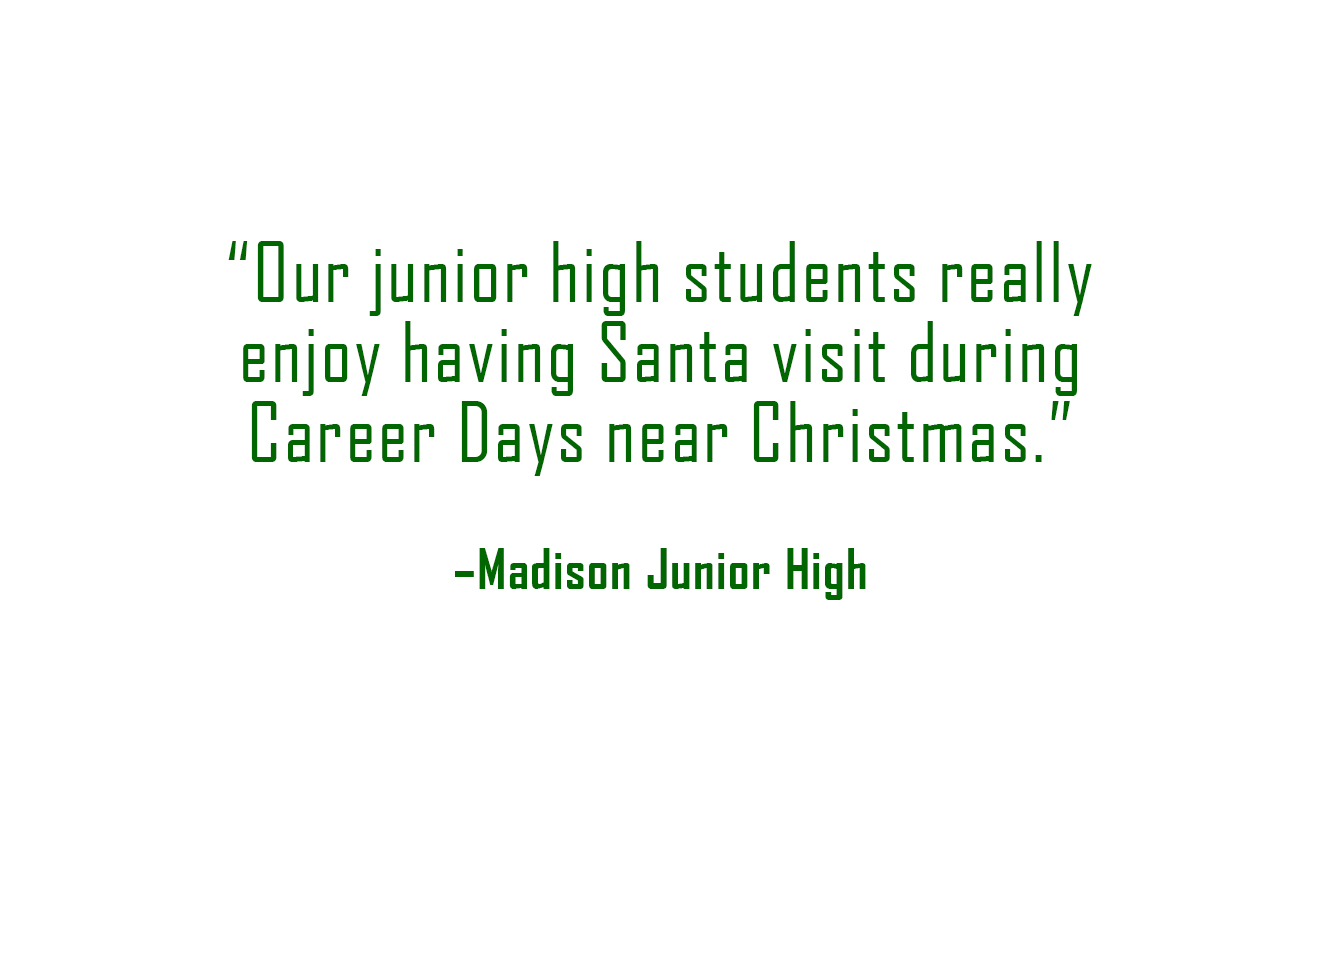 Review - Madison Junior High